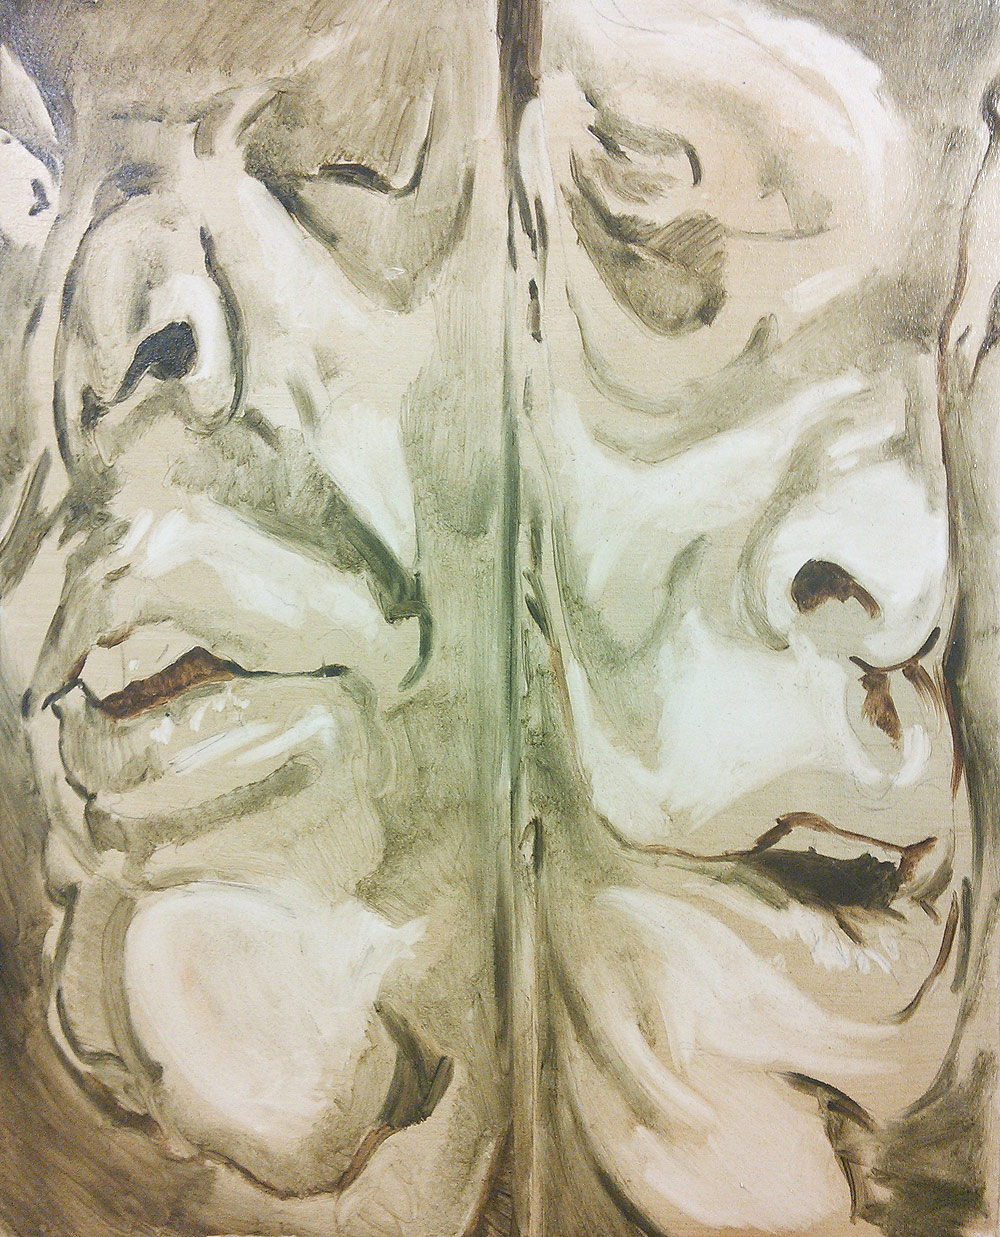 Squeezed - Double portrait - oil on canvas by Scott Hutchison - First Layer